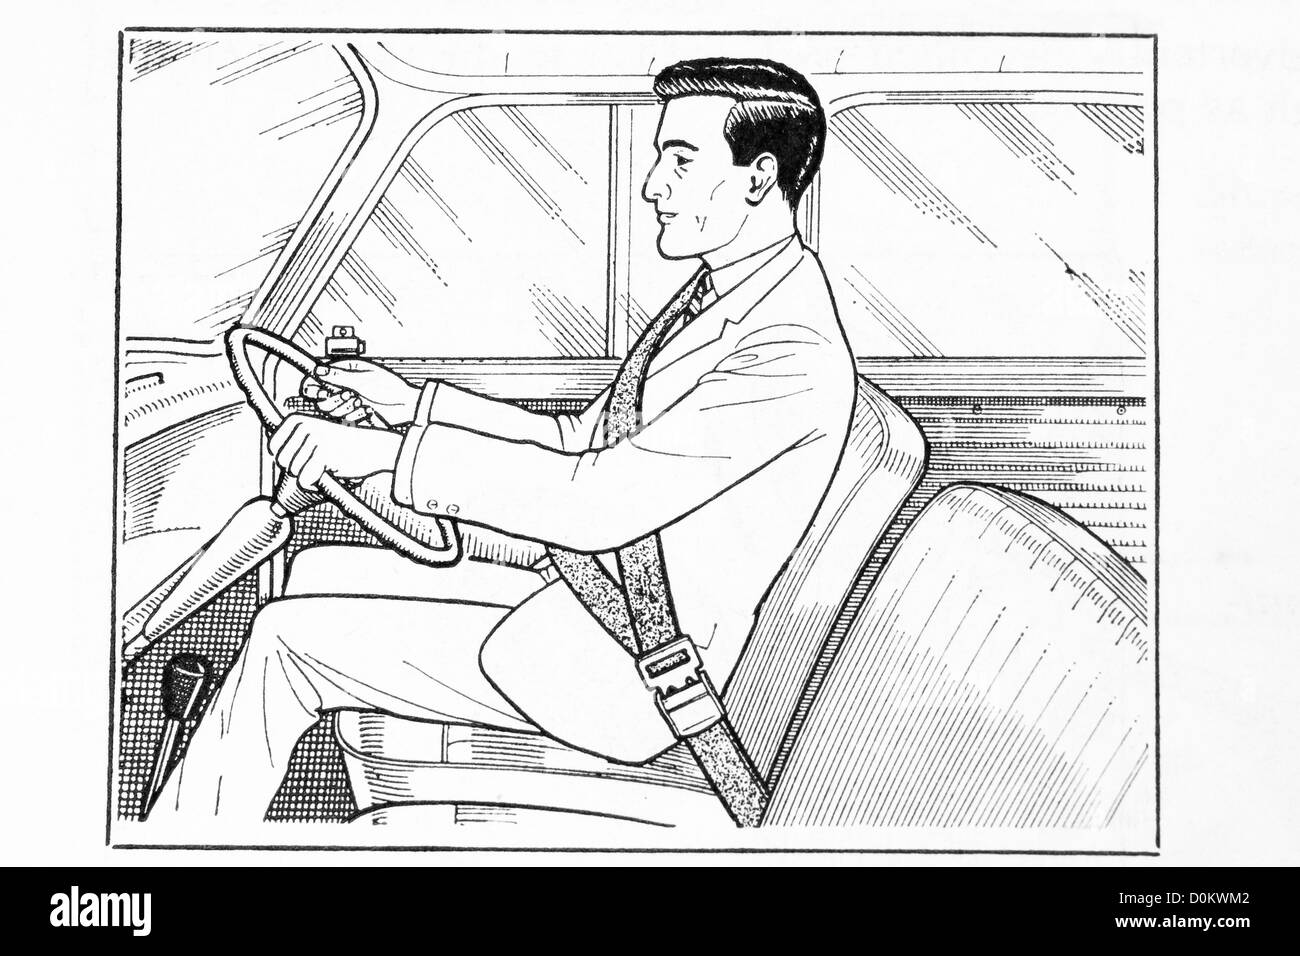 Line art illustration of man seated in a car wearing a seat belt - Stock Image